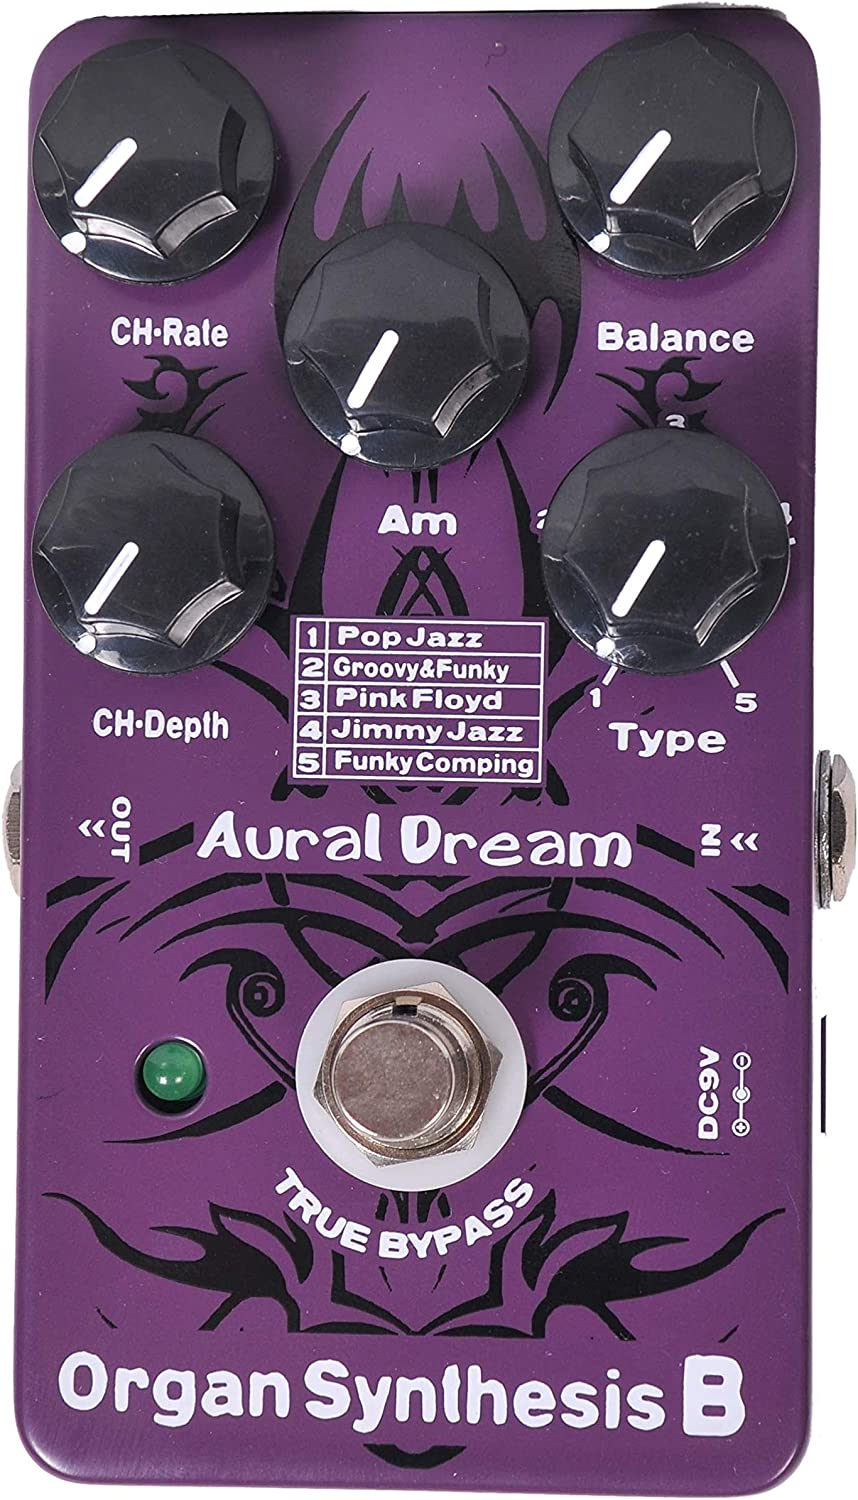 Aural Dream Organ Synthesis B Guitar Effects Pedal with POP Jazz,Groovy&Funky,Pink Floyd,Jimmy Jazz and Funky Comping organ effect including Rotary Speaker,Percussion and Chorus Module